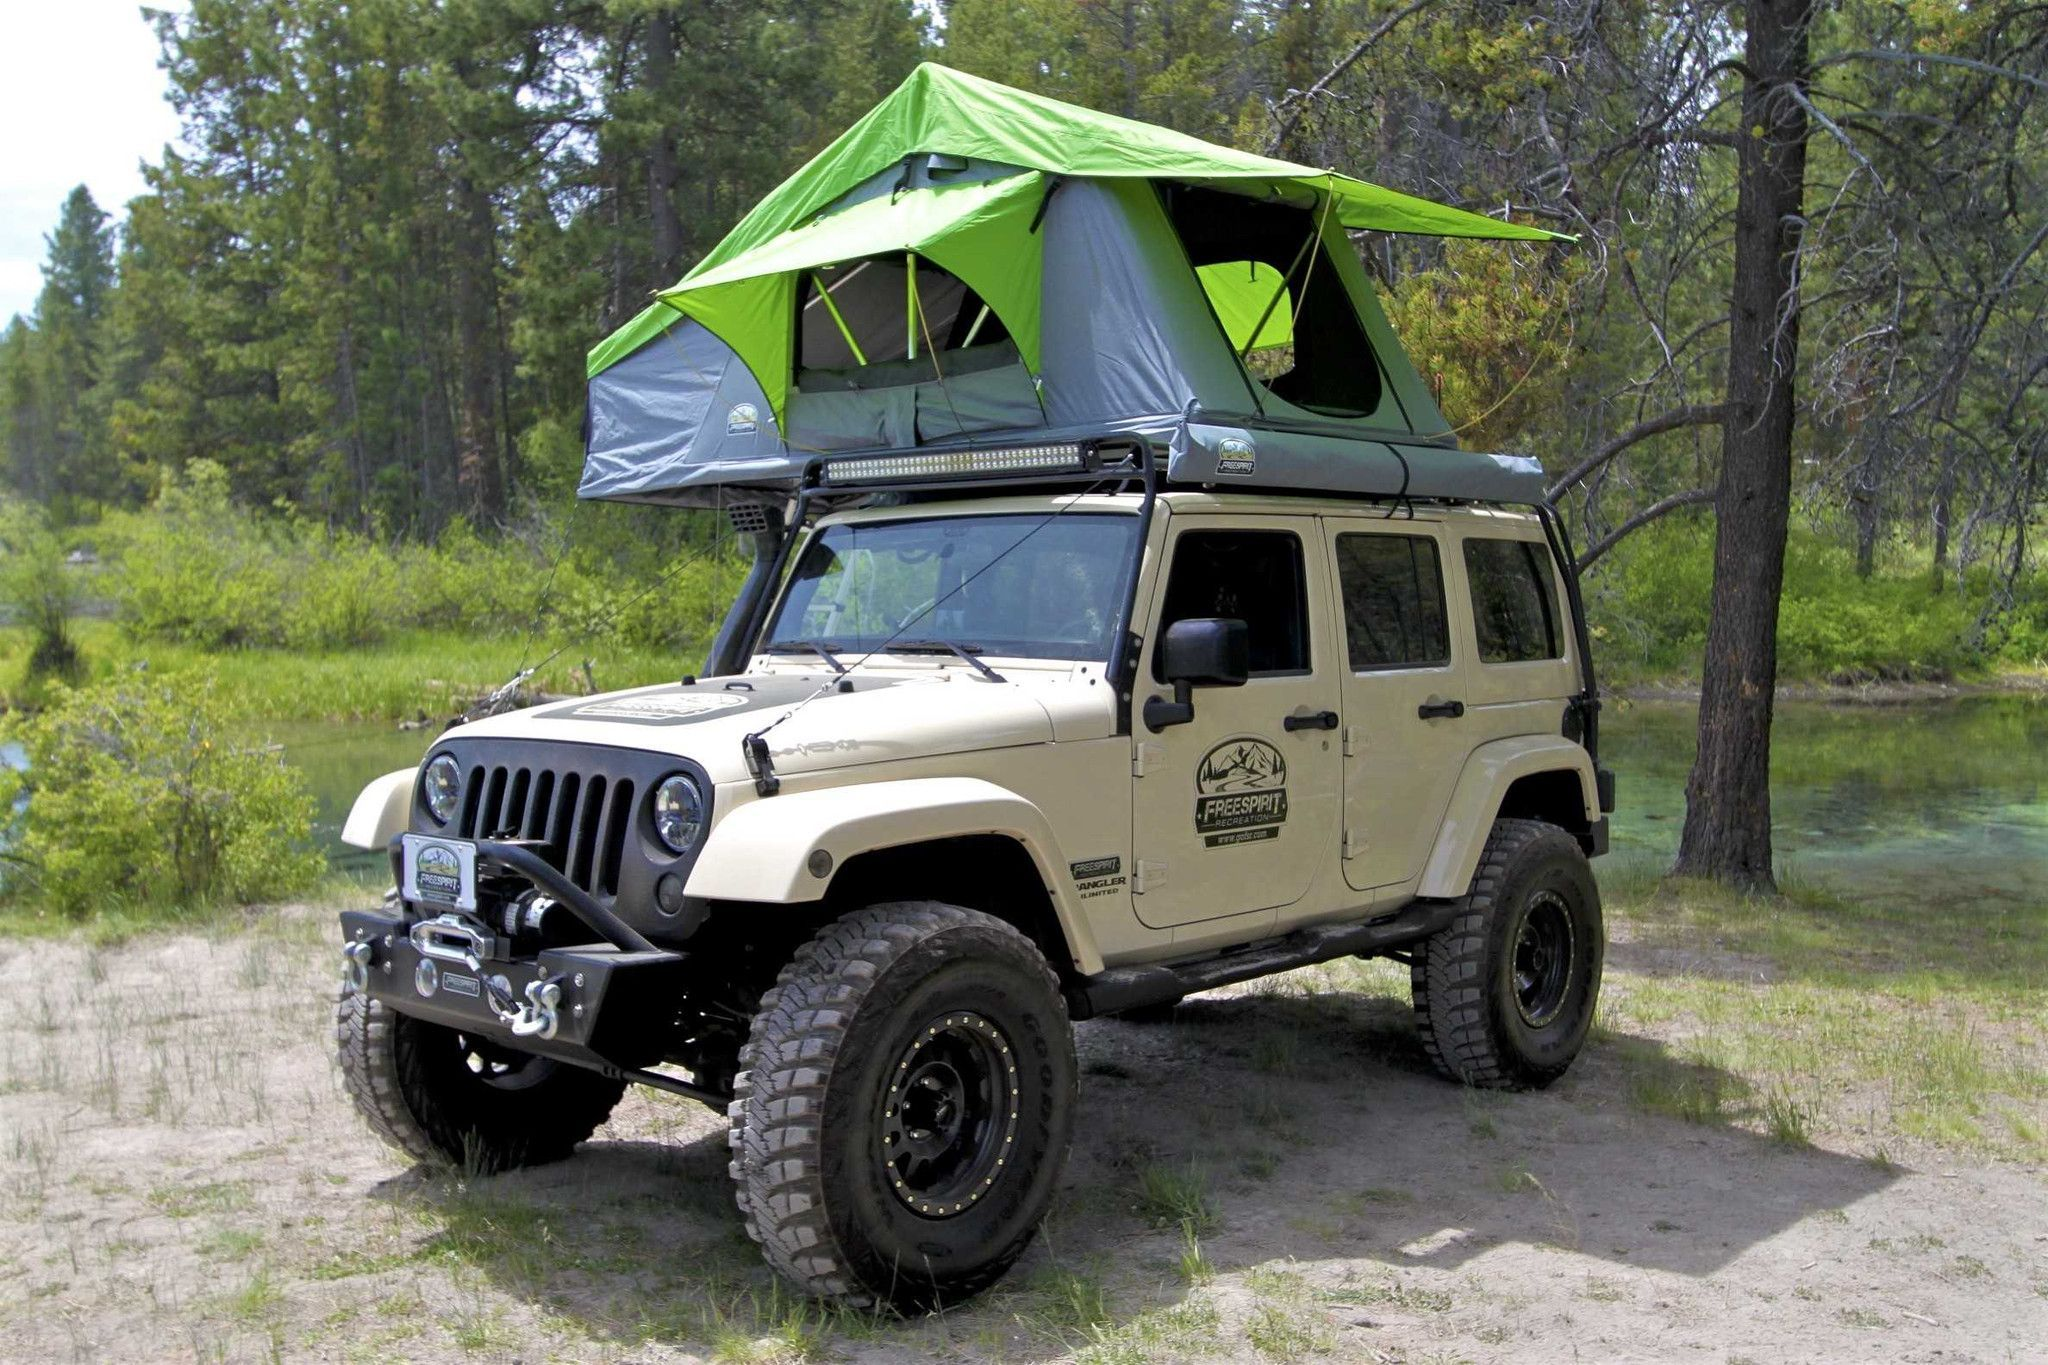 Freespirit Recreation knows their way around a roof top tent. Their founder originally started one of the largest roof top tent companies in the nation ... & FREE SHIPPING ON ALL FREESPIRIT TENTS TIL 2017!* Freespirit ...